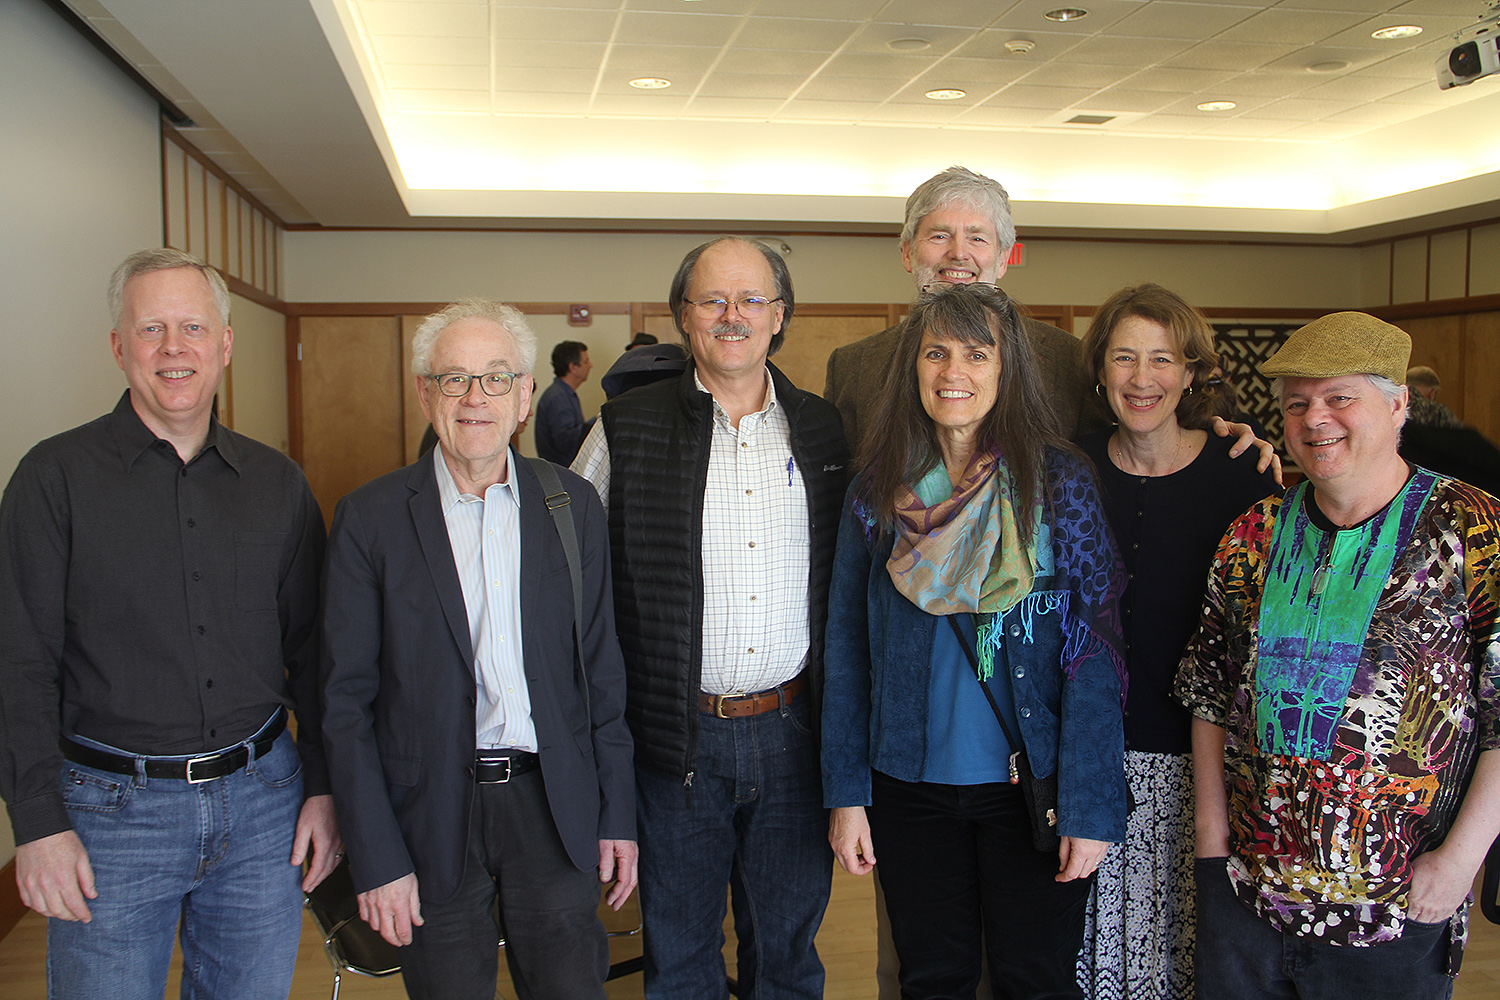 Mark Slobin, second from left, was celebrated by colleagues, friends and family during a day long conference and concert April 16.